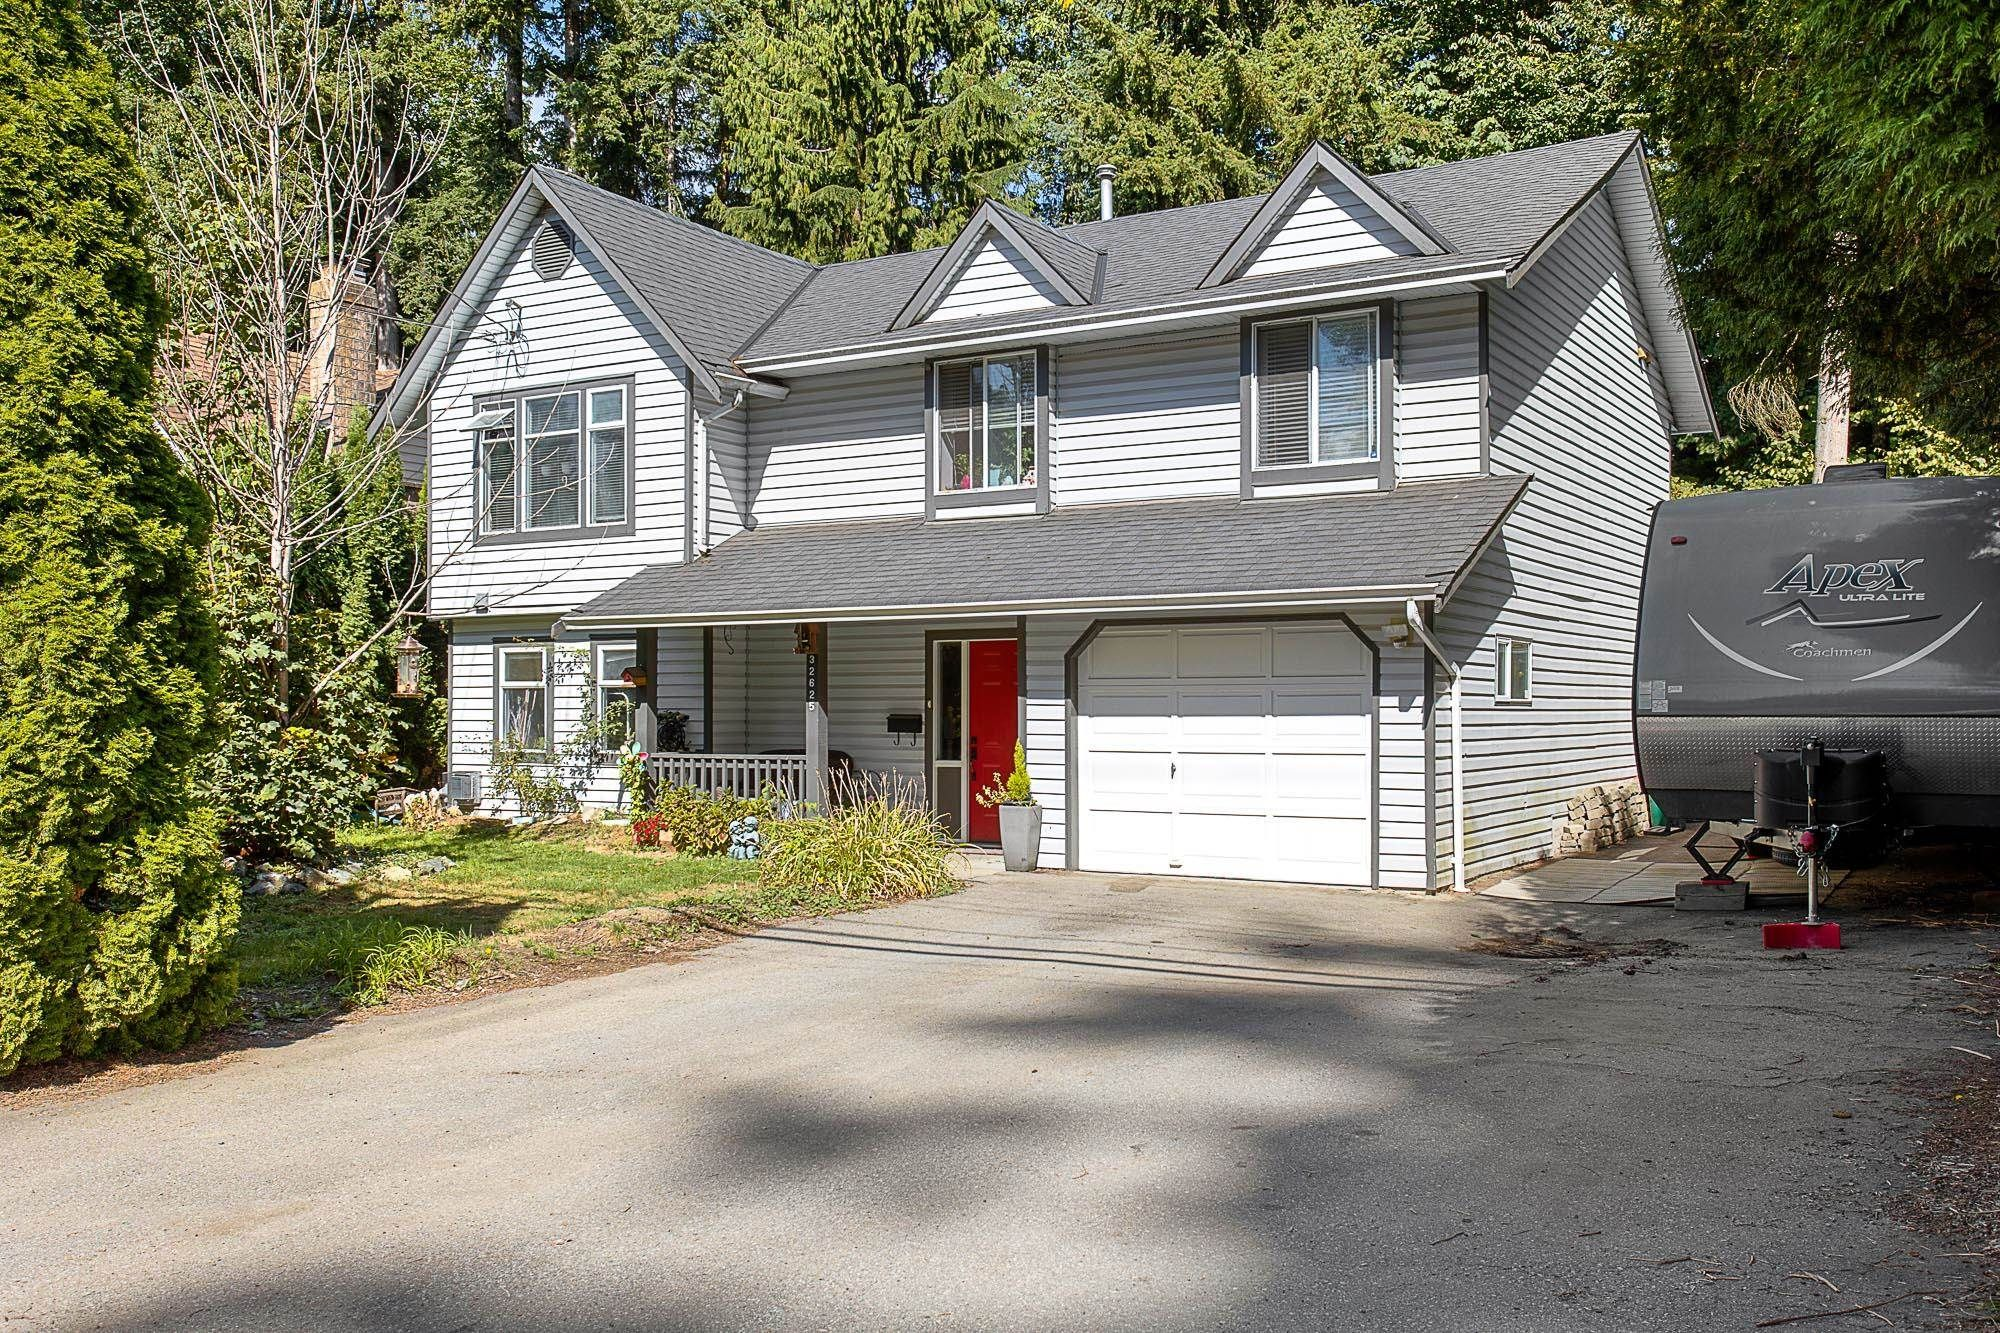 Main Photo: 32625 14 Avenue in Mission: Mission BC House for sale : MLS®# R2616067